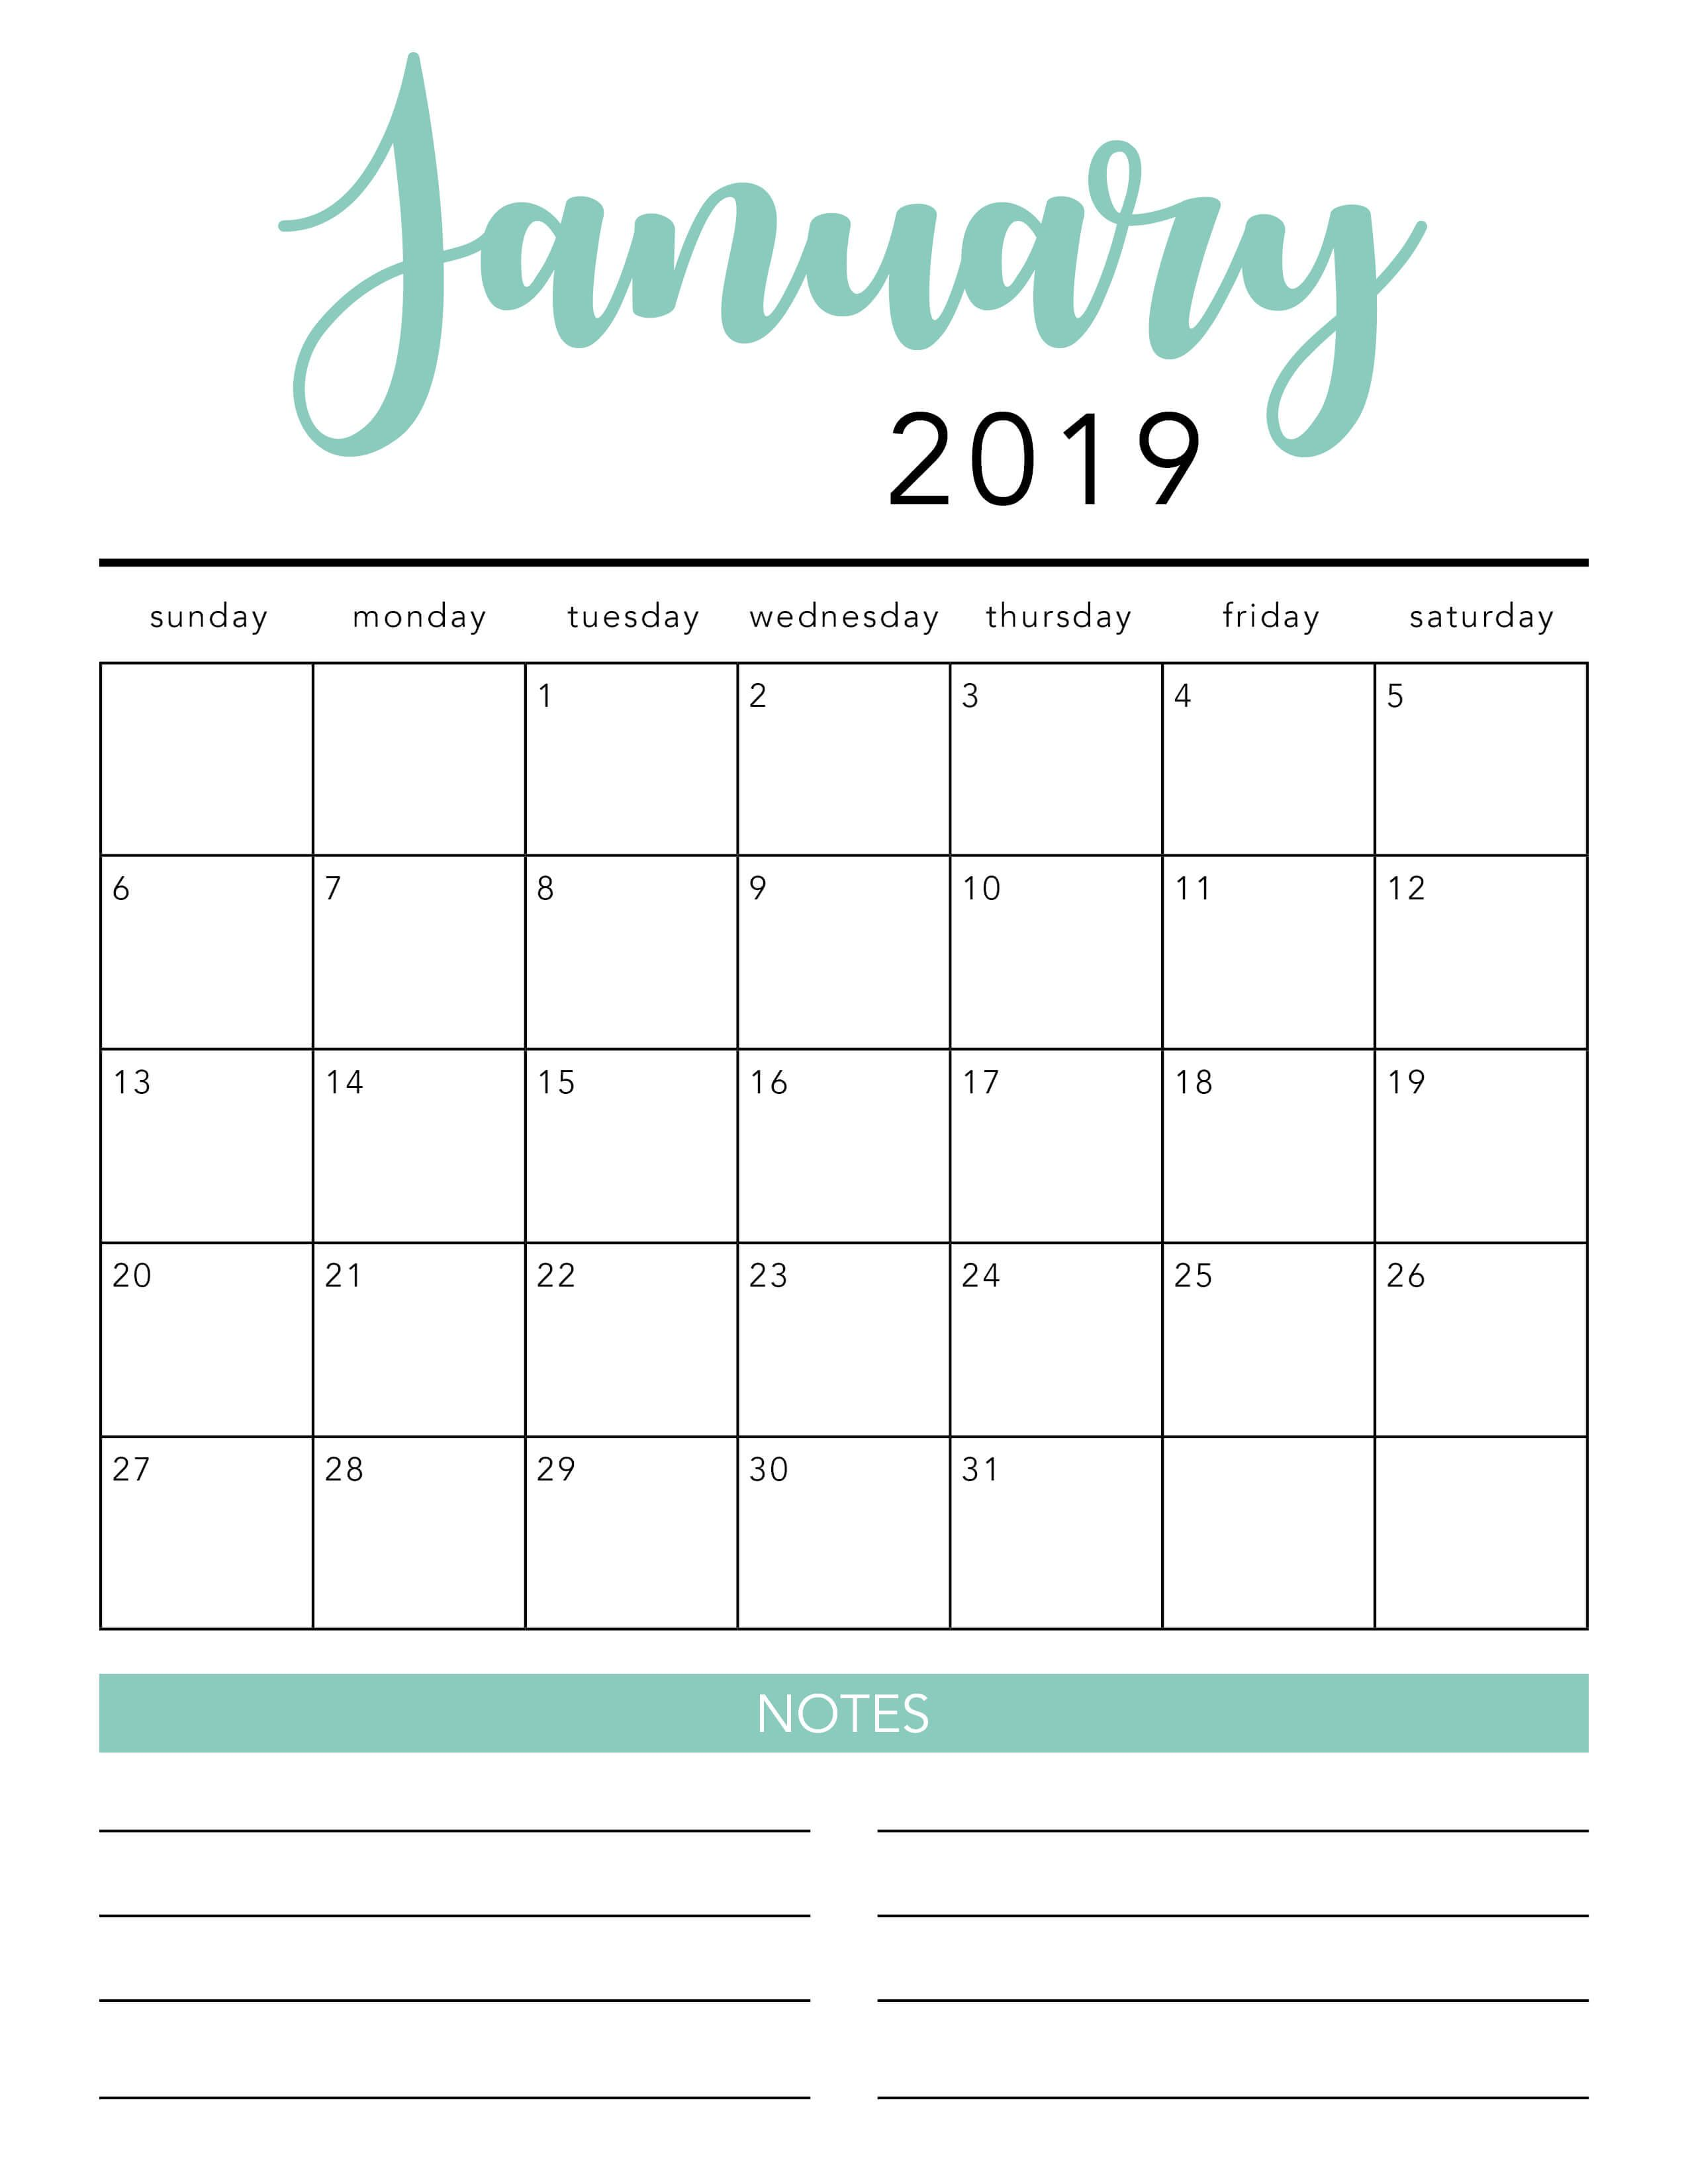 Free Calendar Templates 2019 FREE 2019 Printable Calendar Template (2 colors!)   I Heart